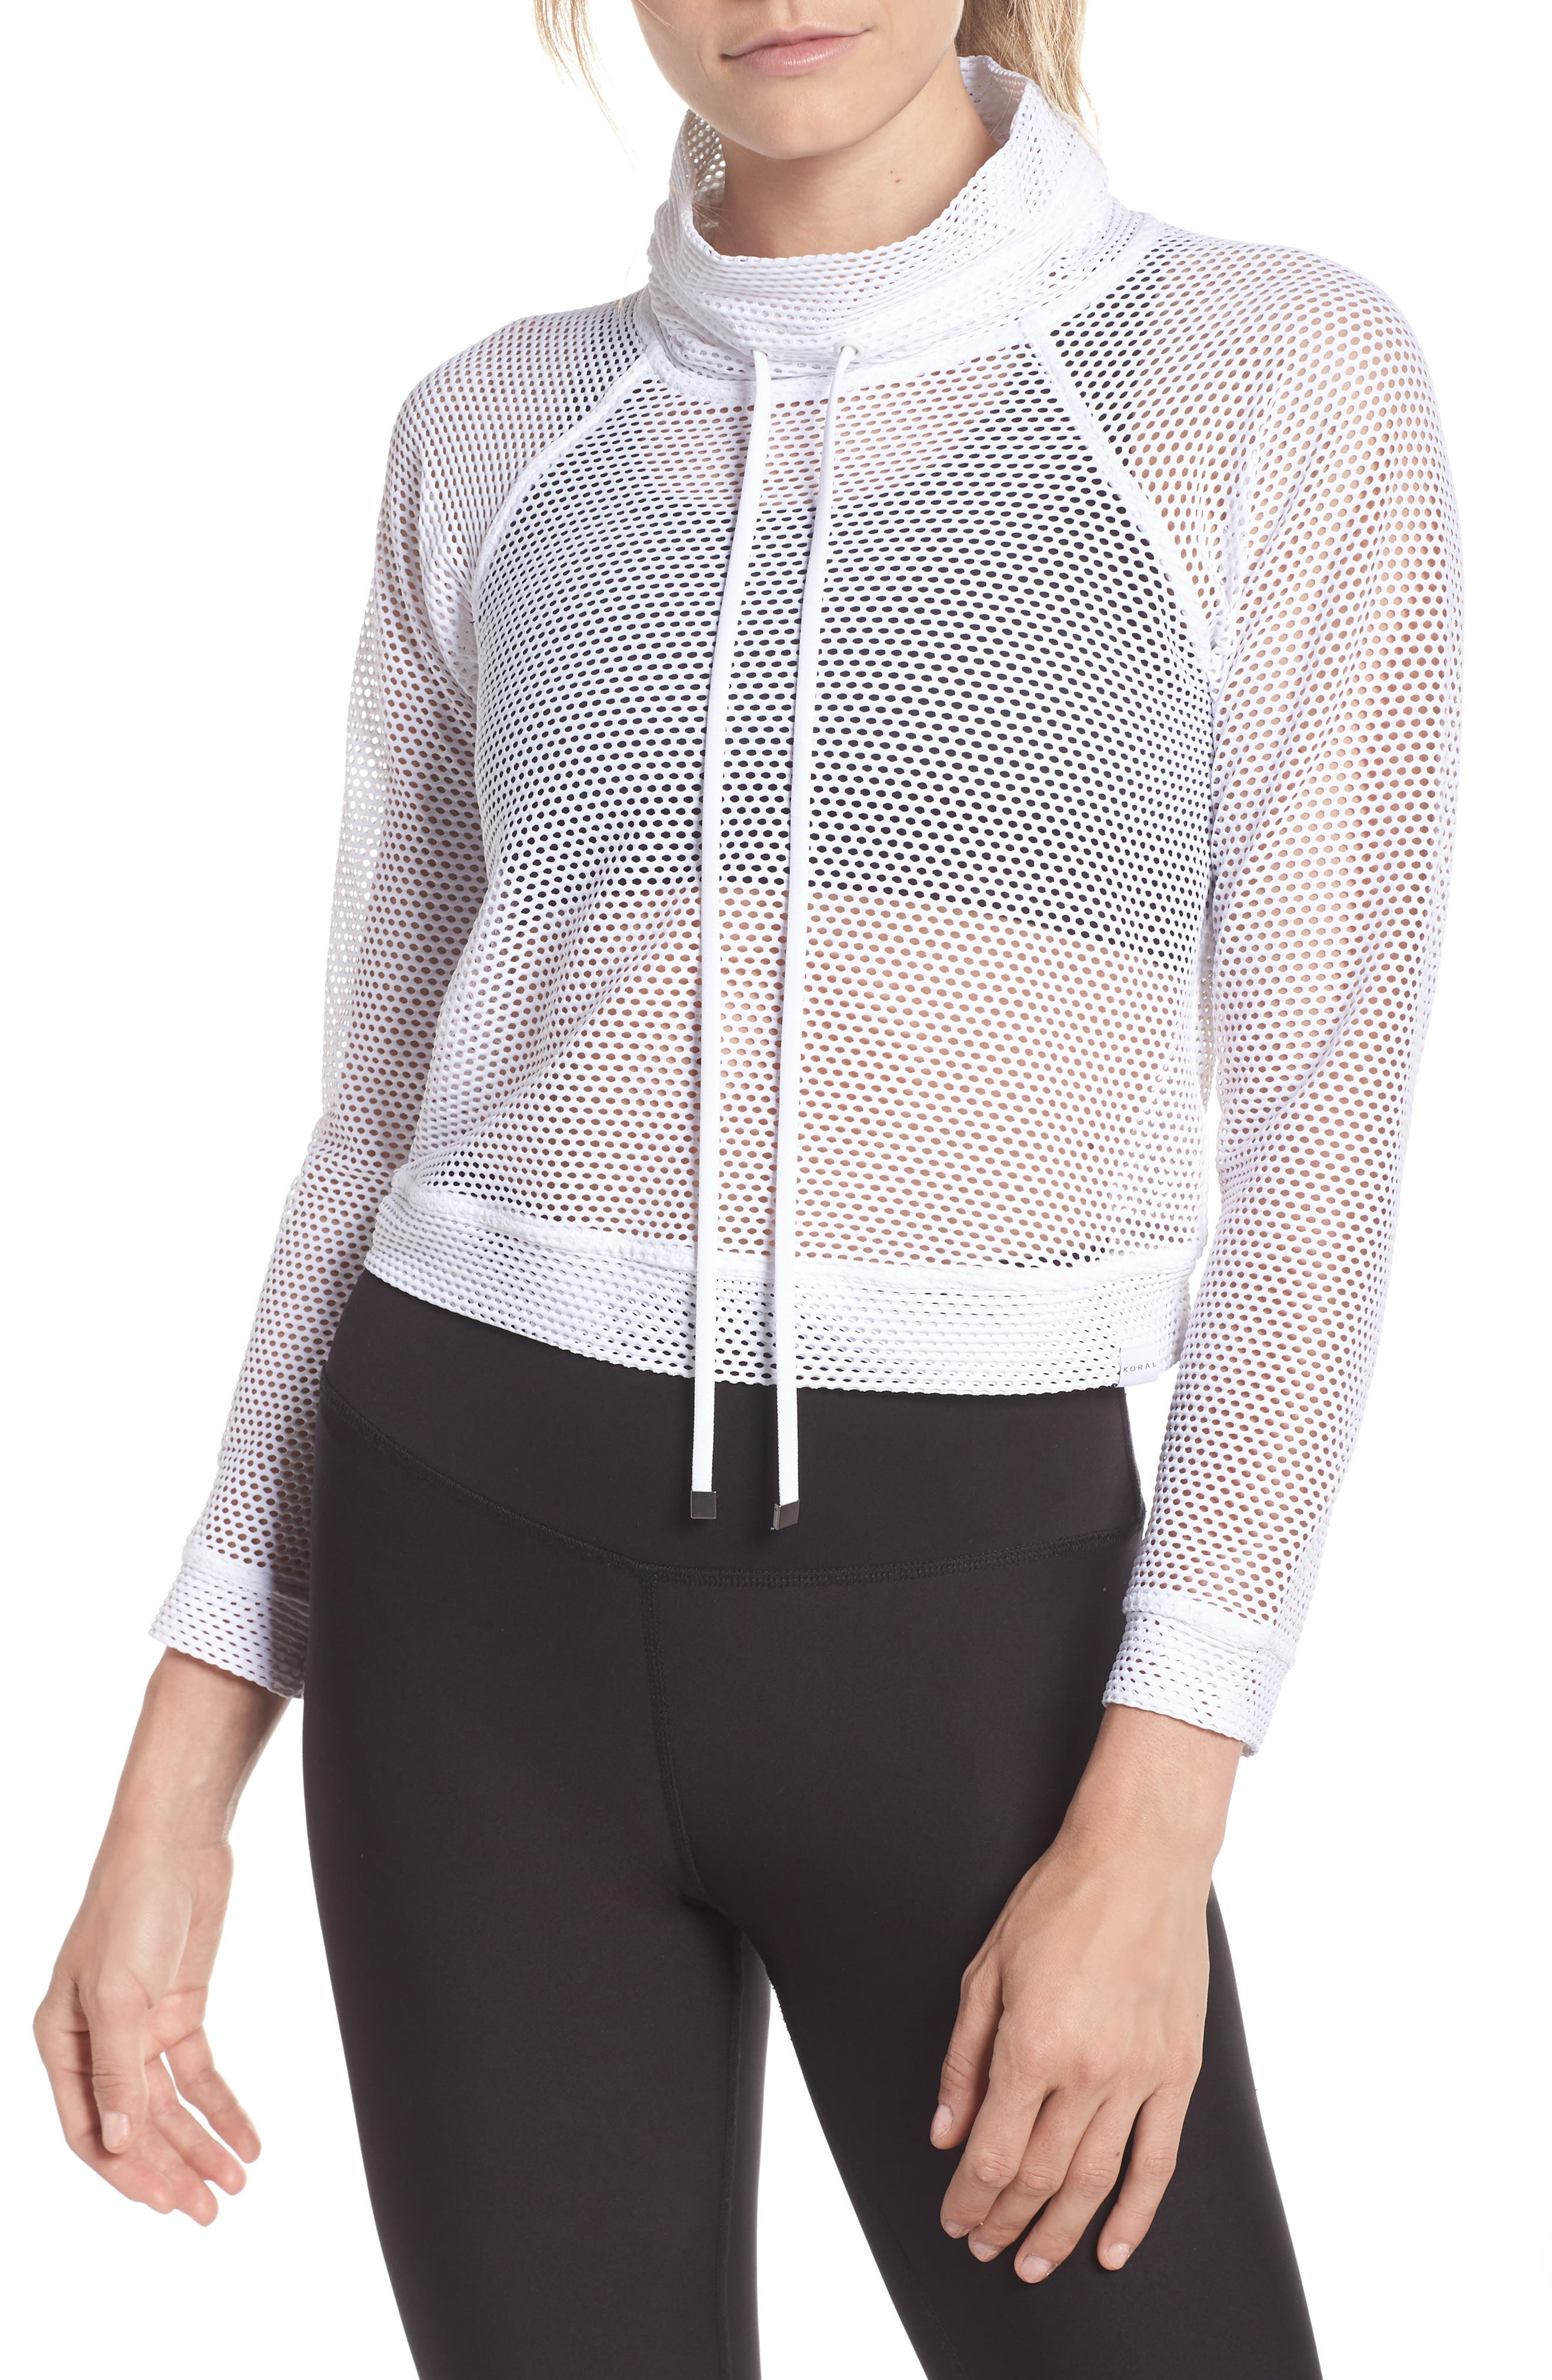 Mesh Pullover,                             Main thumbnail 1, color,                             White